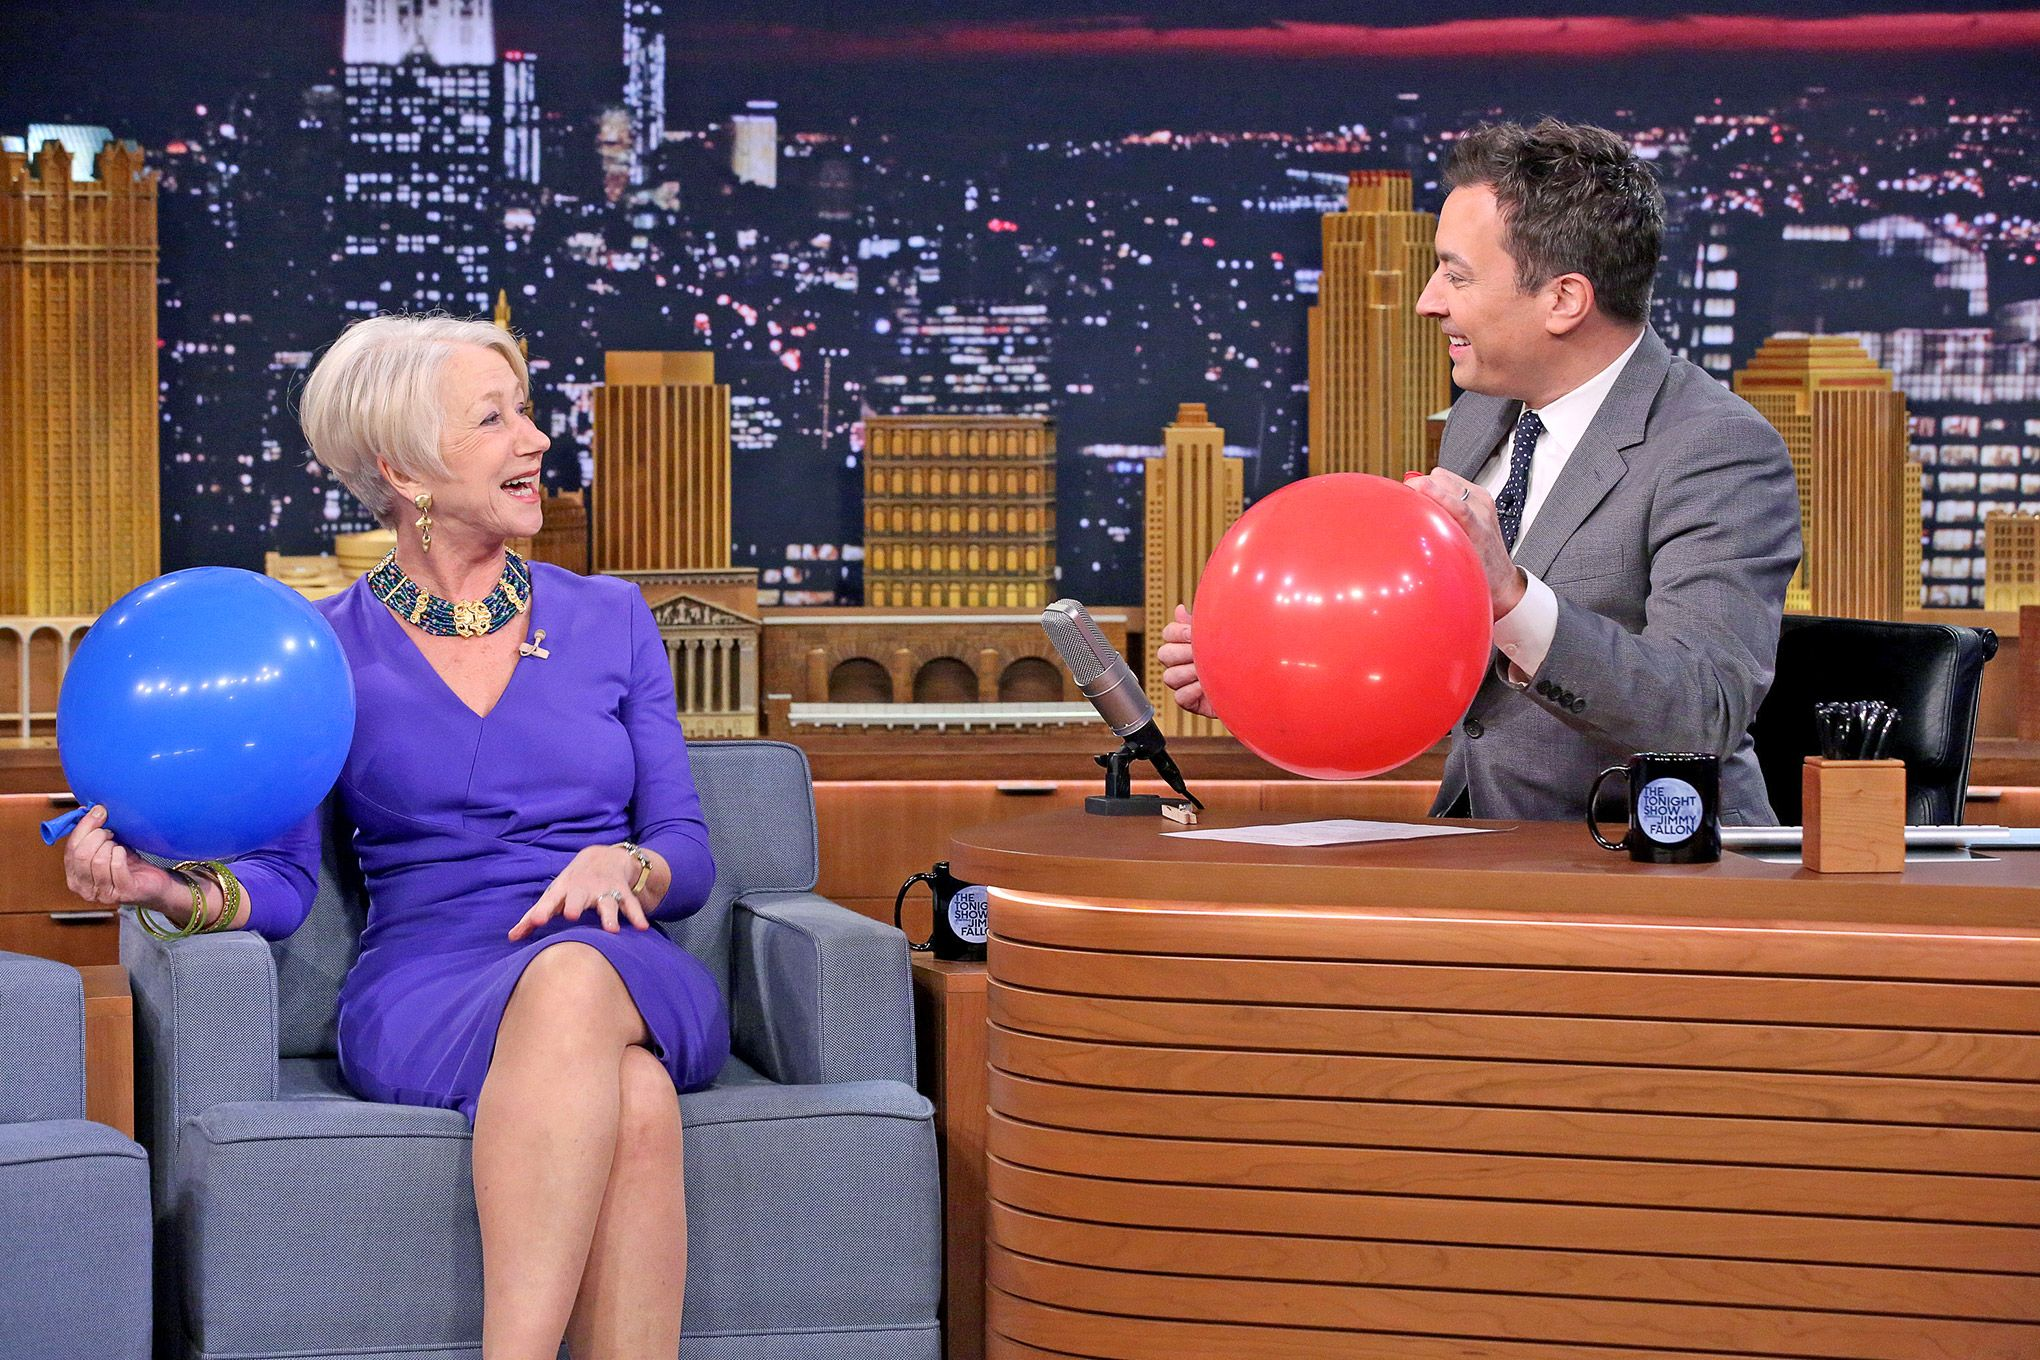 #HelenMirren Answers Interview Questions After Sucking In Helium On #TheTonightShow [Watch]